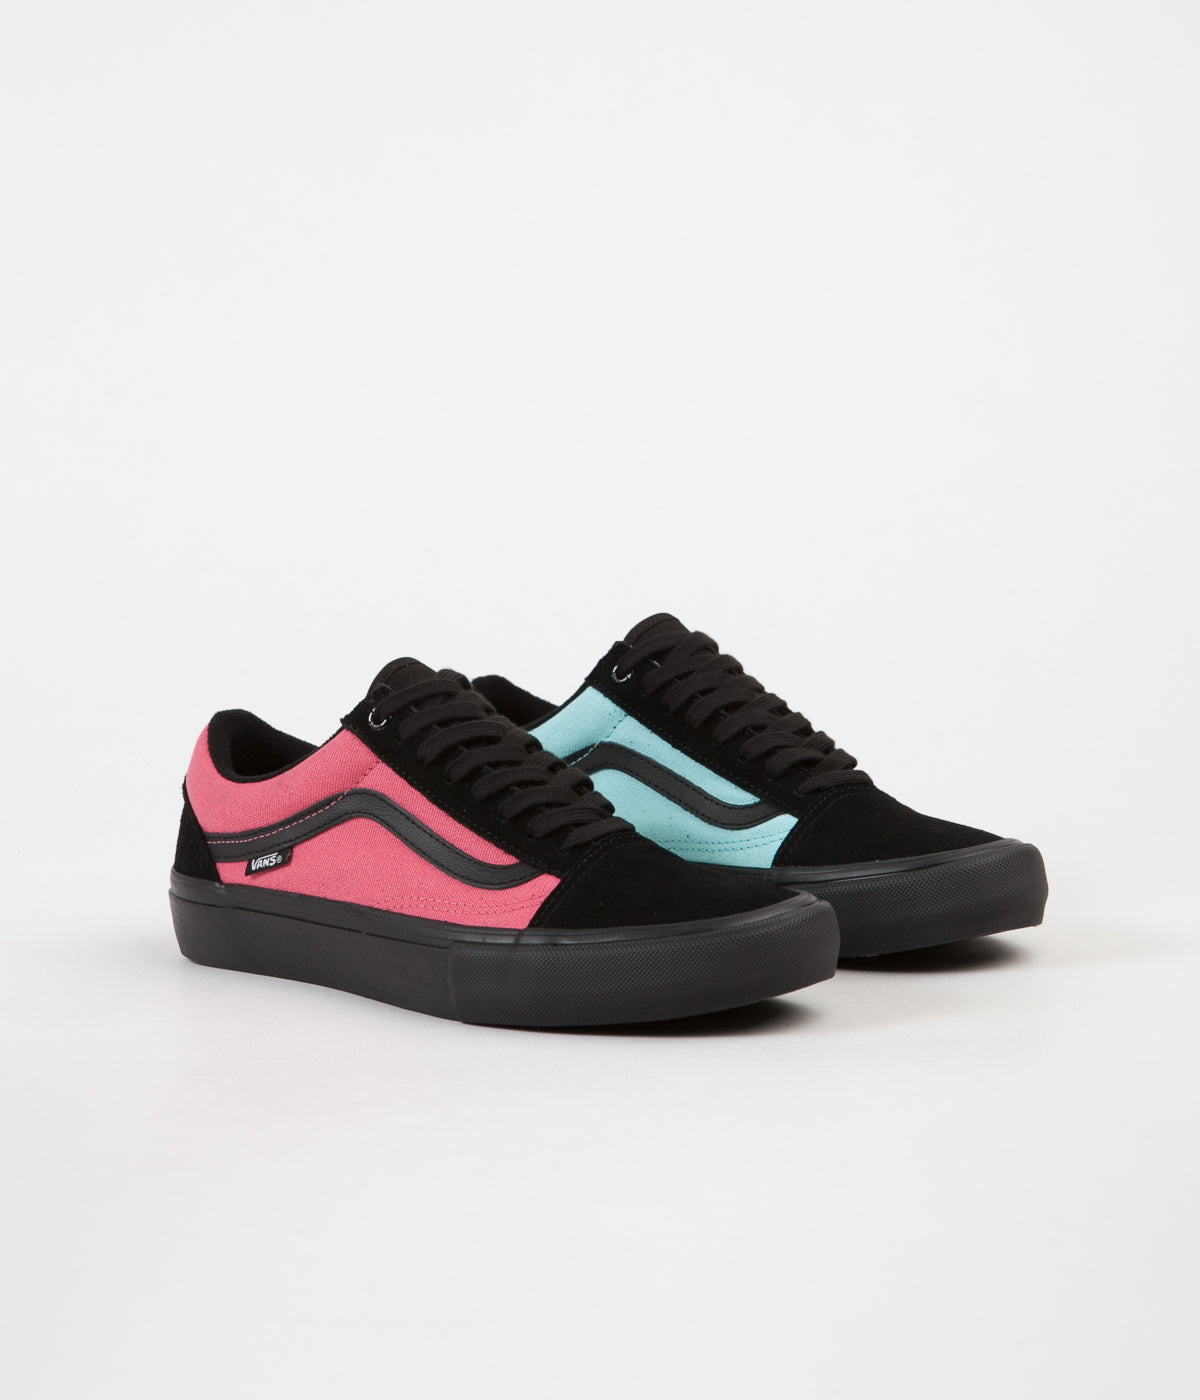 Shoes Vans pink and blue exclusive photo